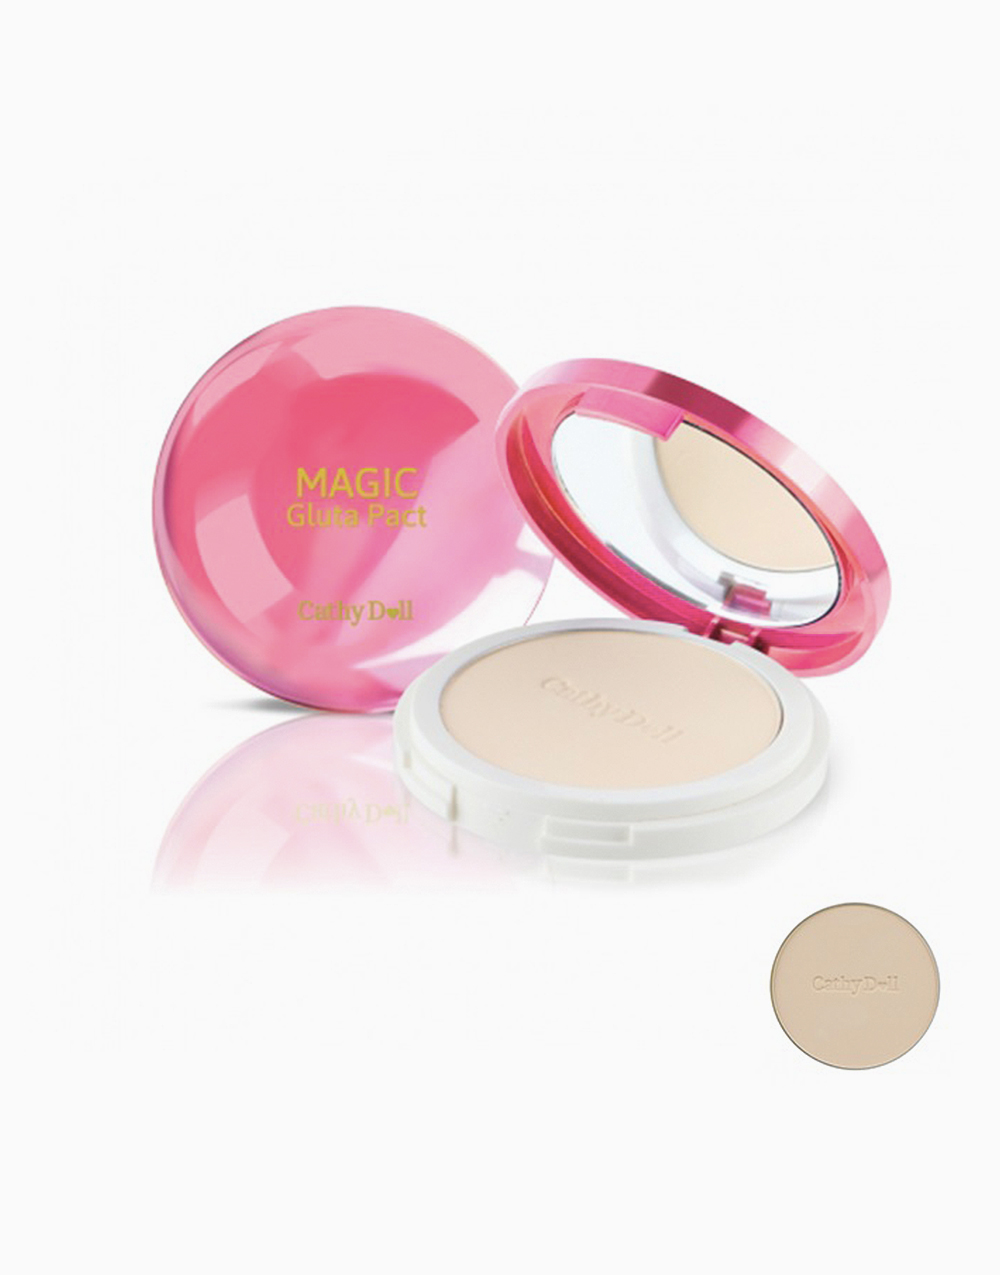 Magic Gluta Pact SPF 50 PA+++ by Cathy Doll | #21 Light beige